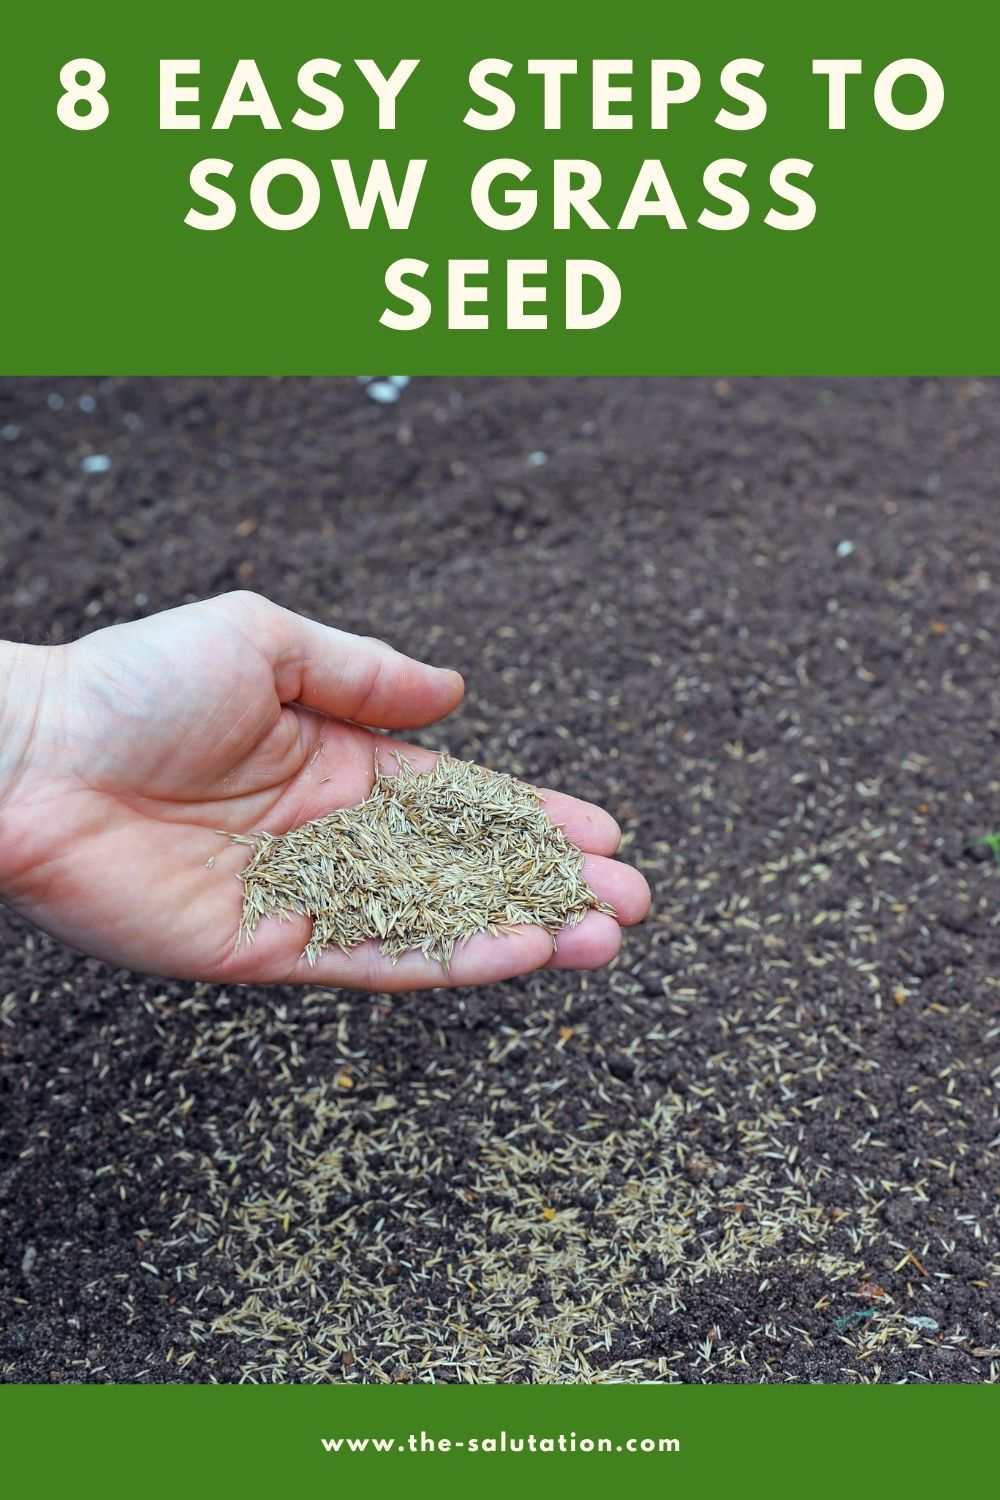 8 Easy Steps to Sow Grass Seed 2